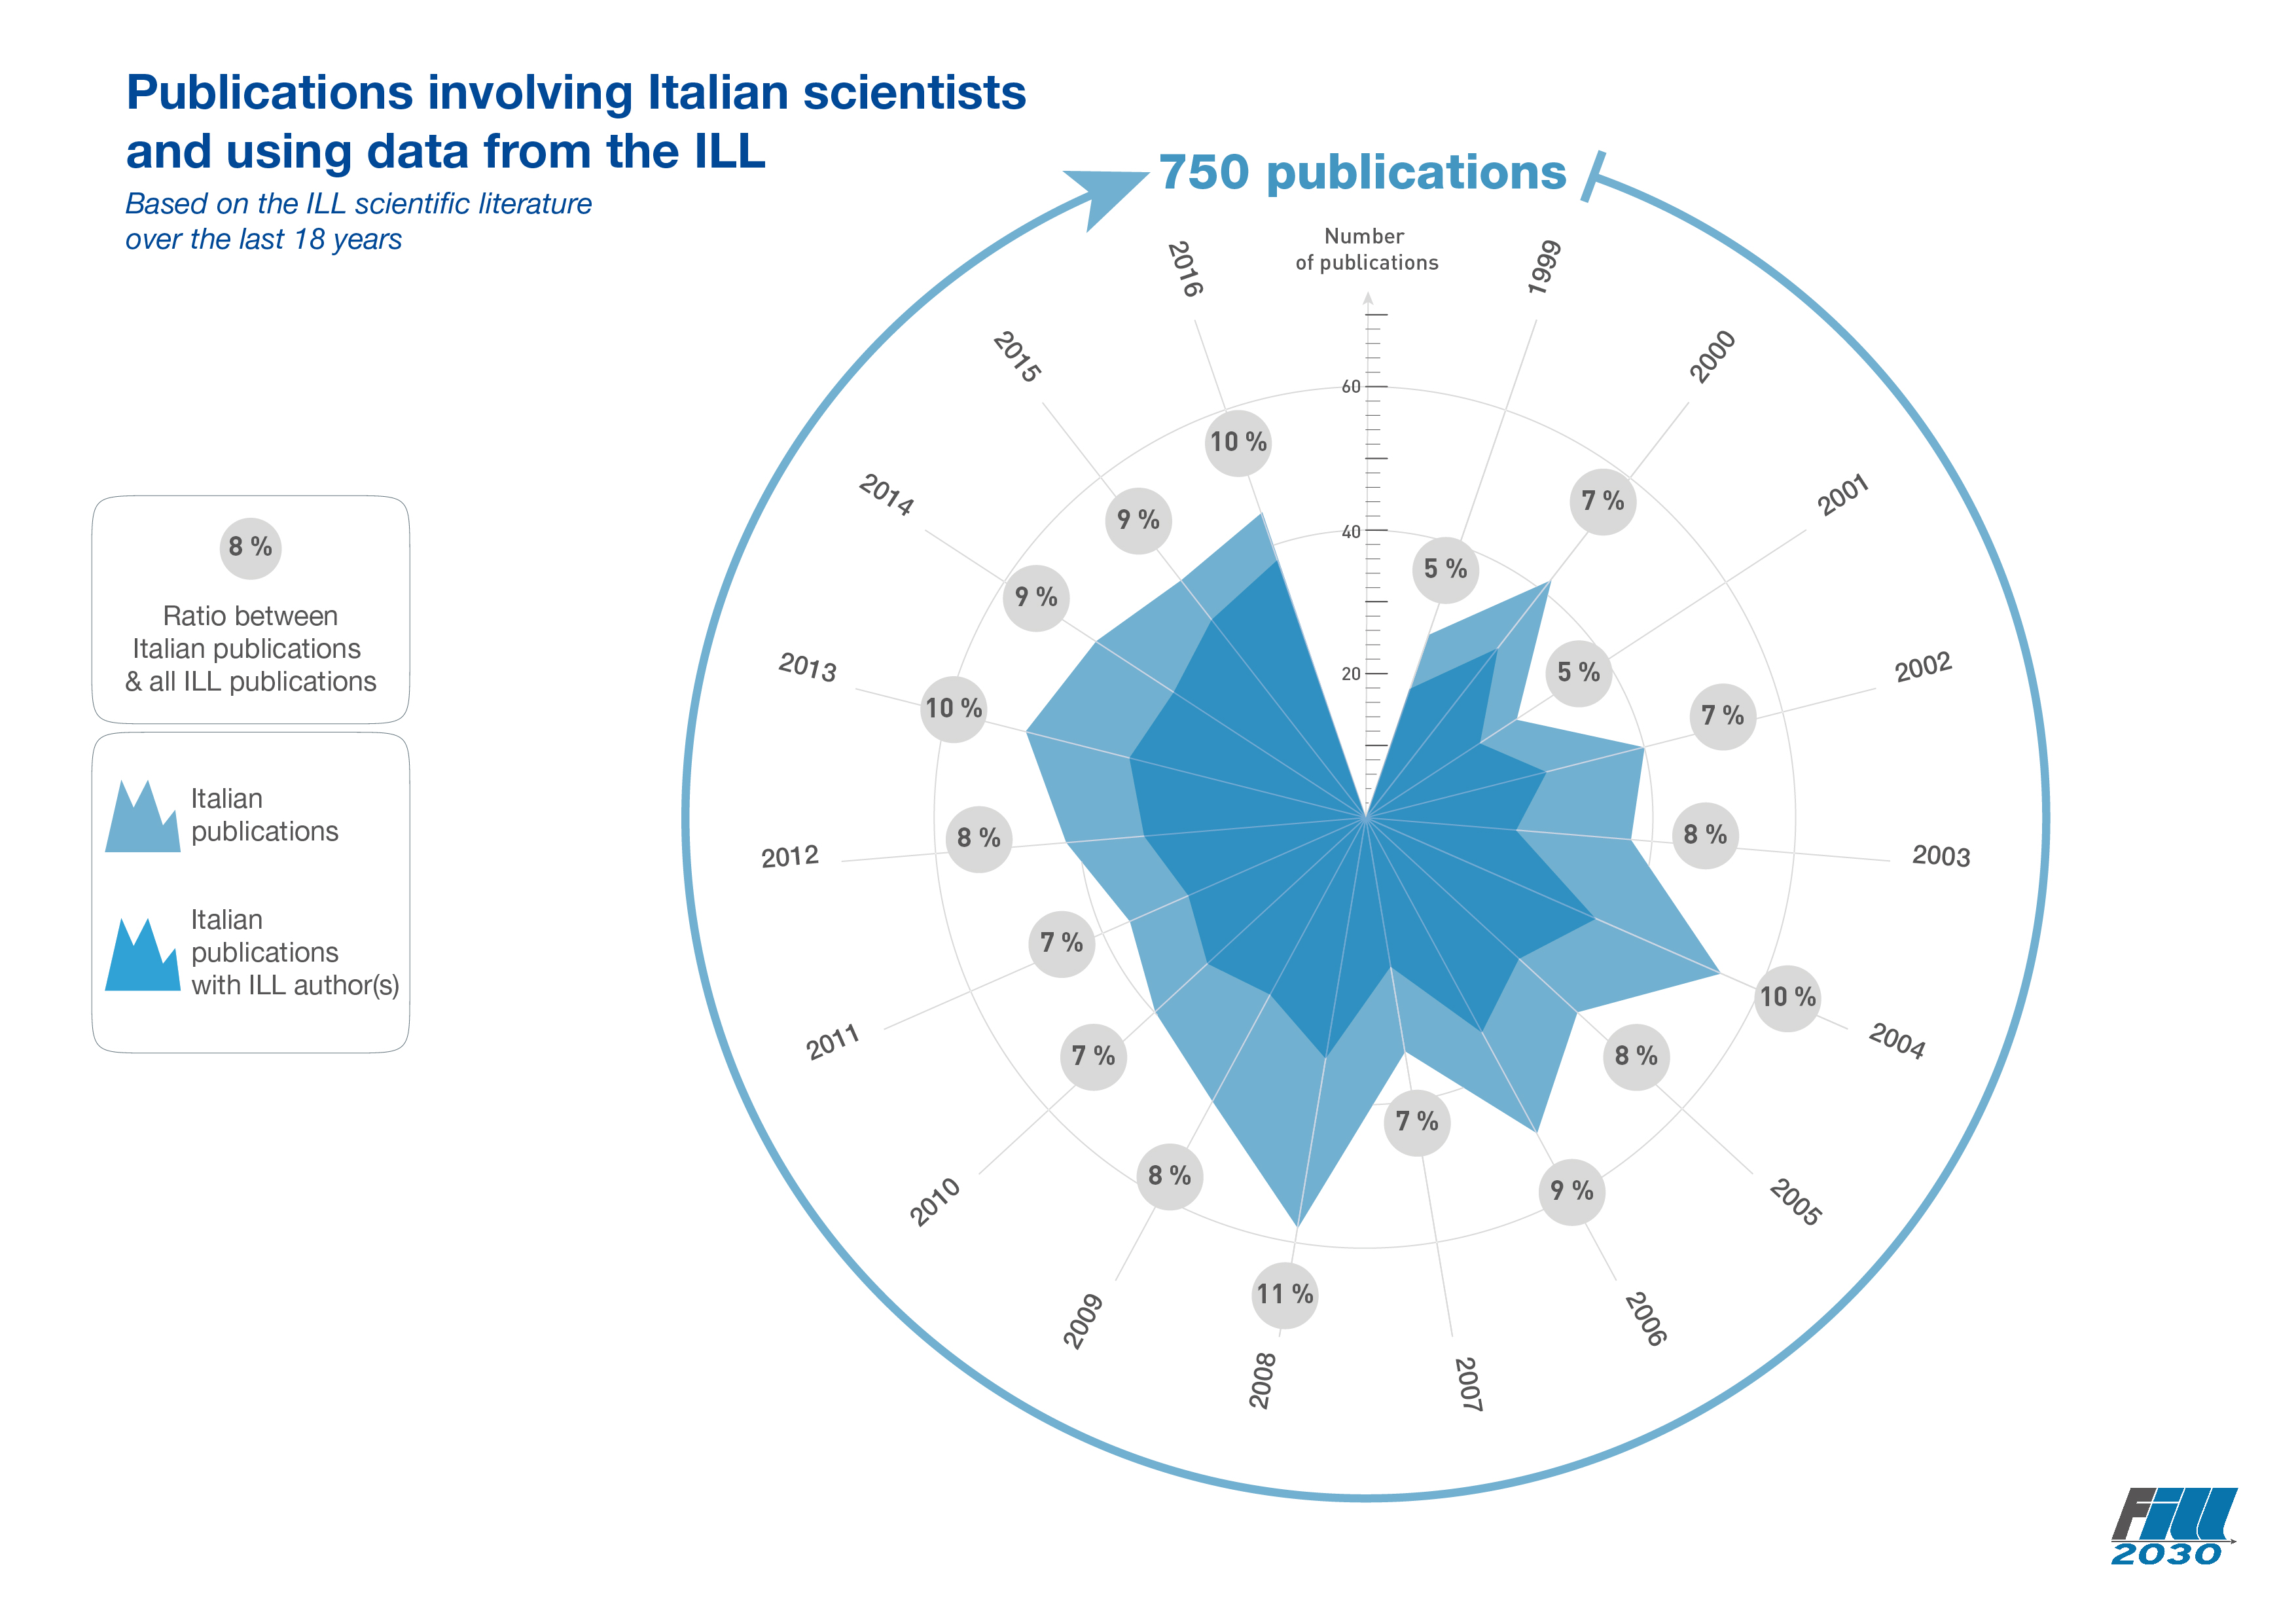 Publications involving Italian scientists and using data from the ILL